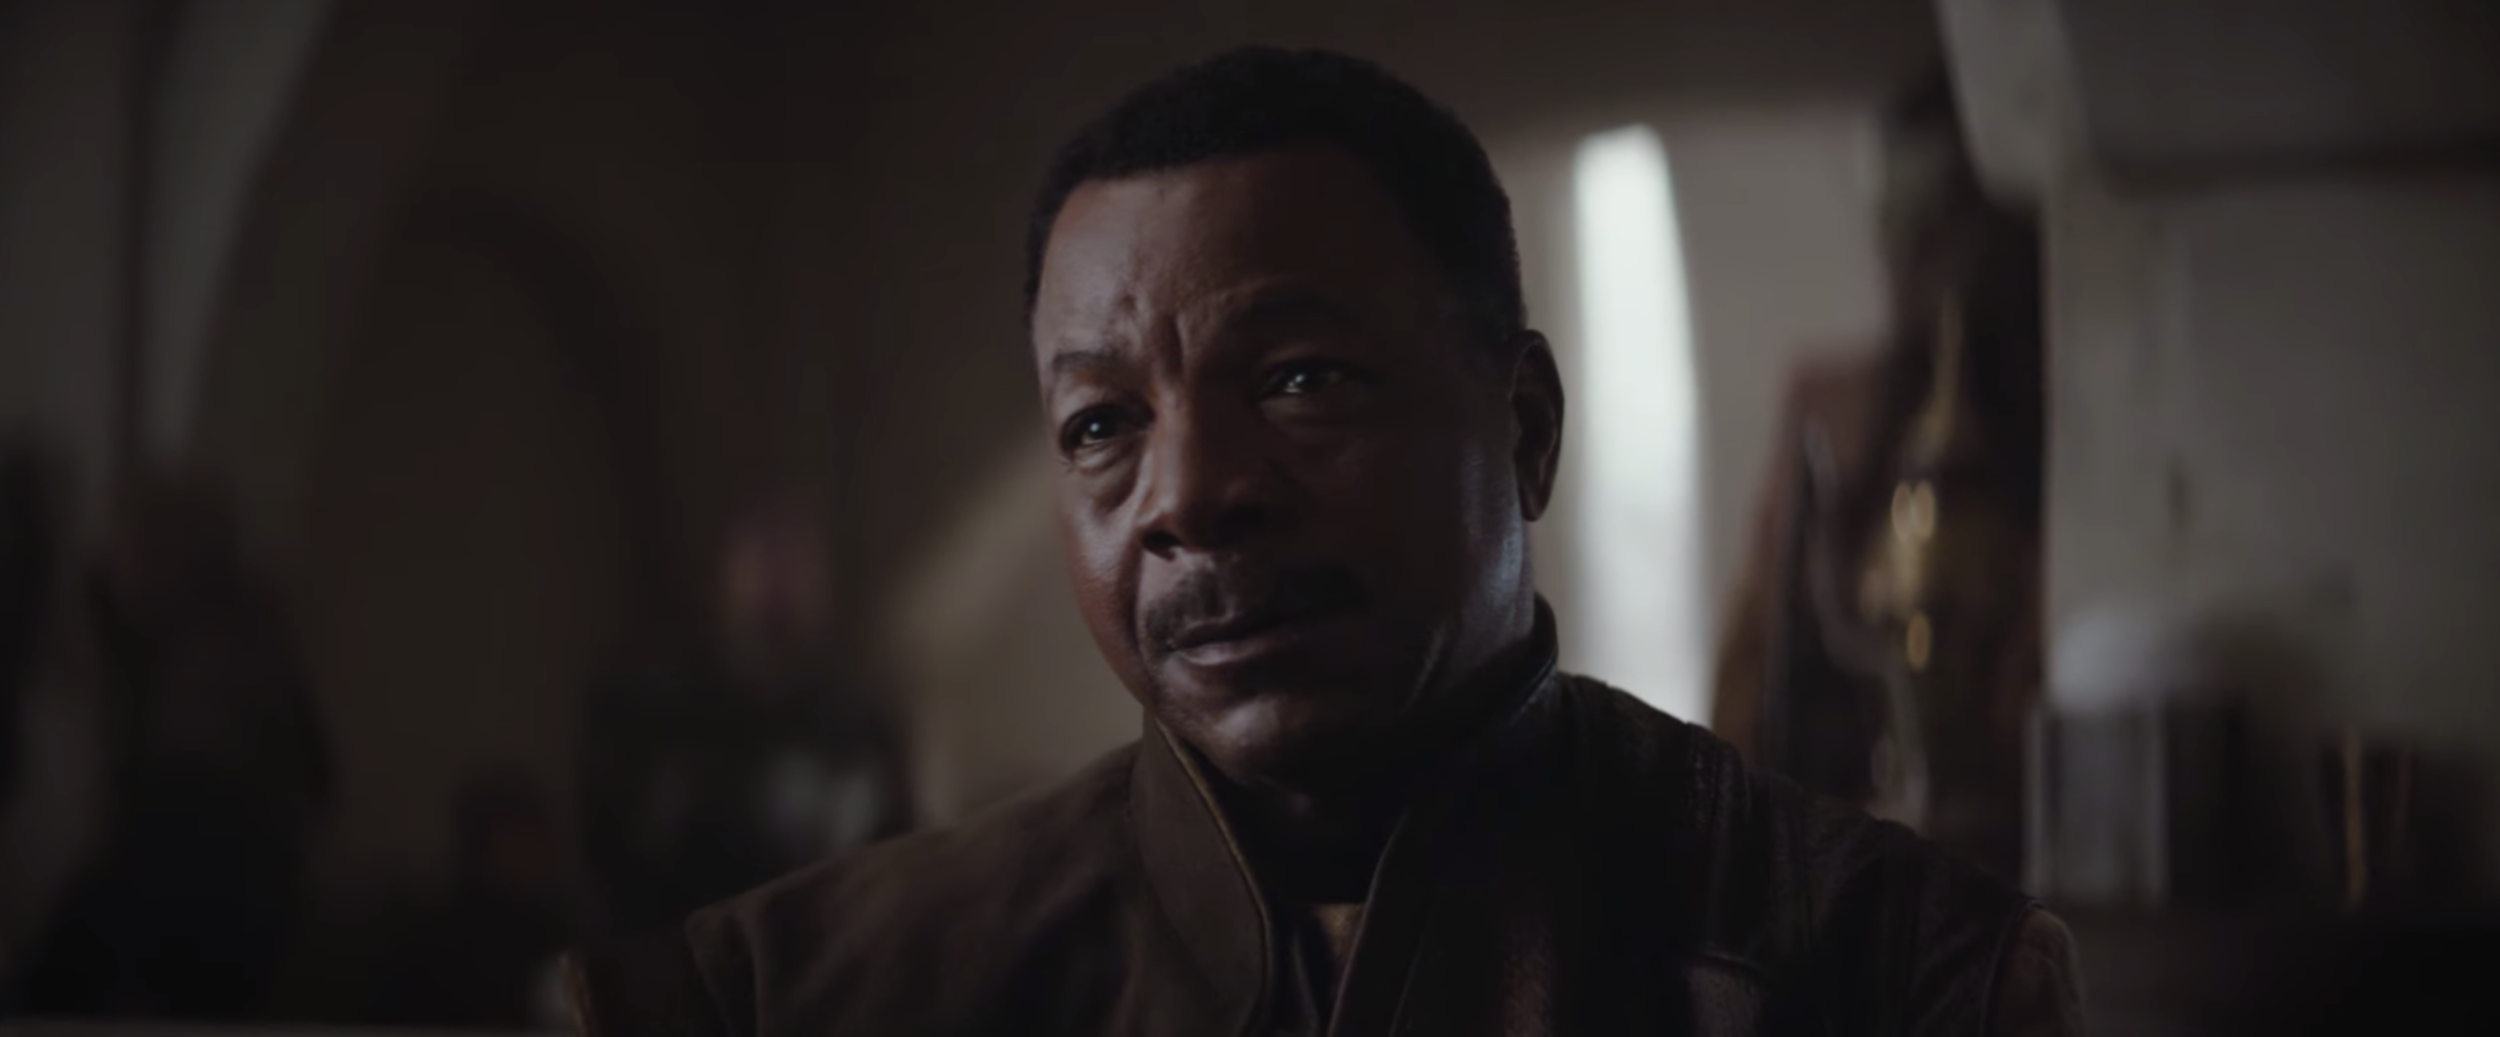 meet-the-new-star-wars-characters-being-introduced-in-the-mandalorian6